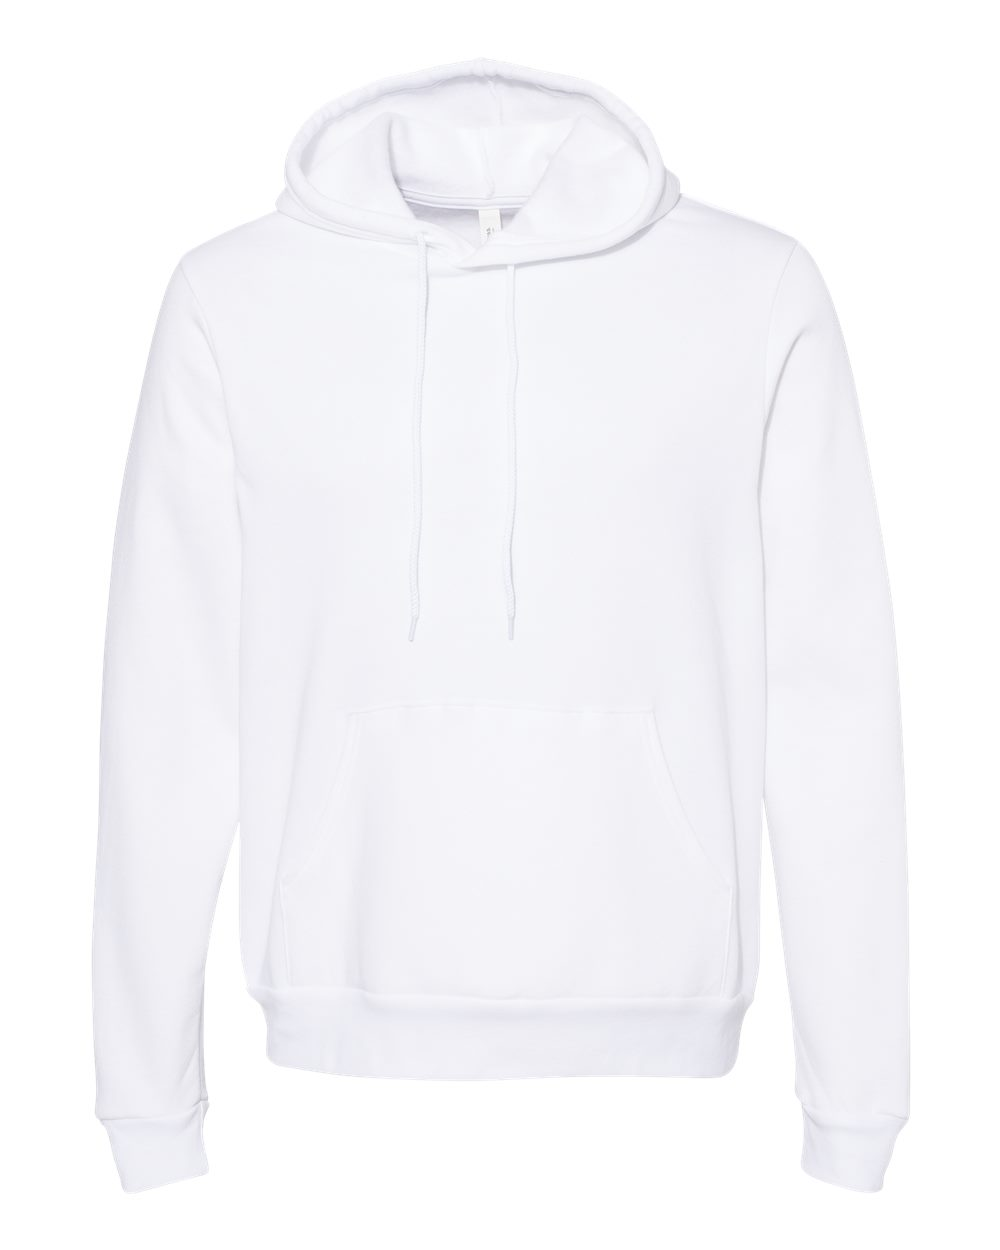 BELLA & CANVAS Customizable Hoodie in White